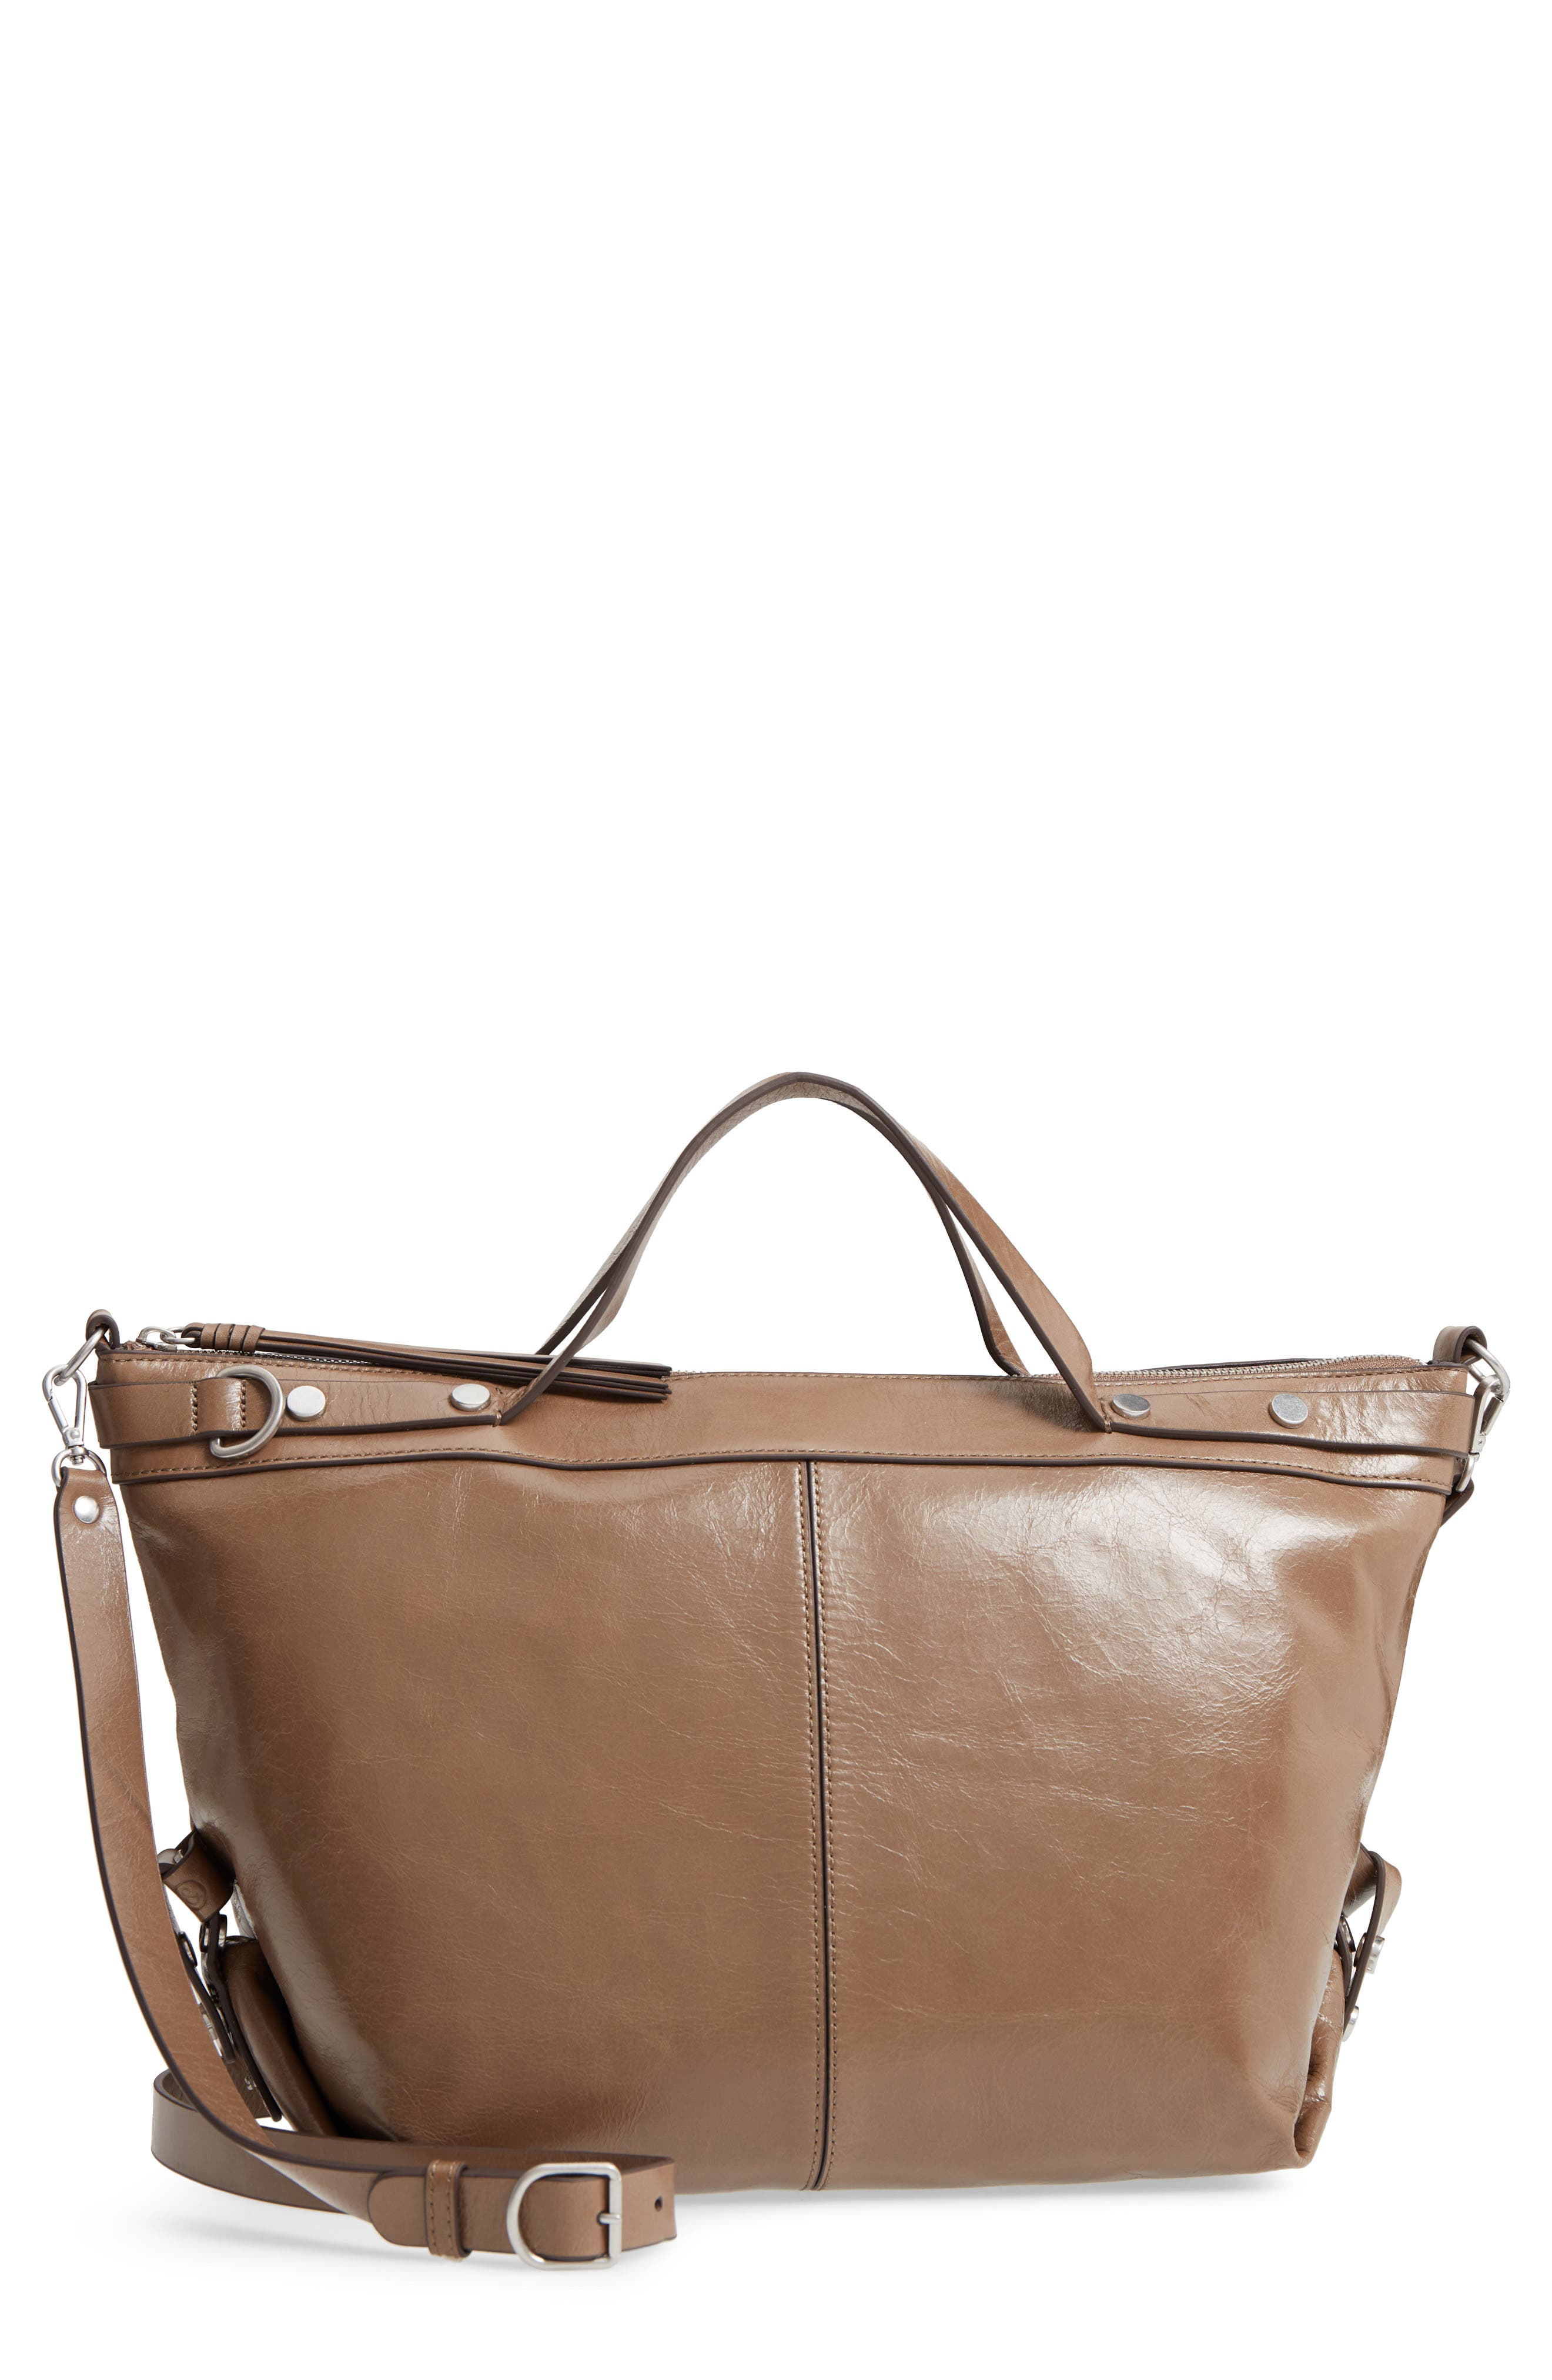 Perry Glazed Leather Convertible Satchel,                         Main,                         color, BEIGE BISCUIT